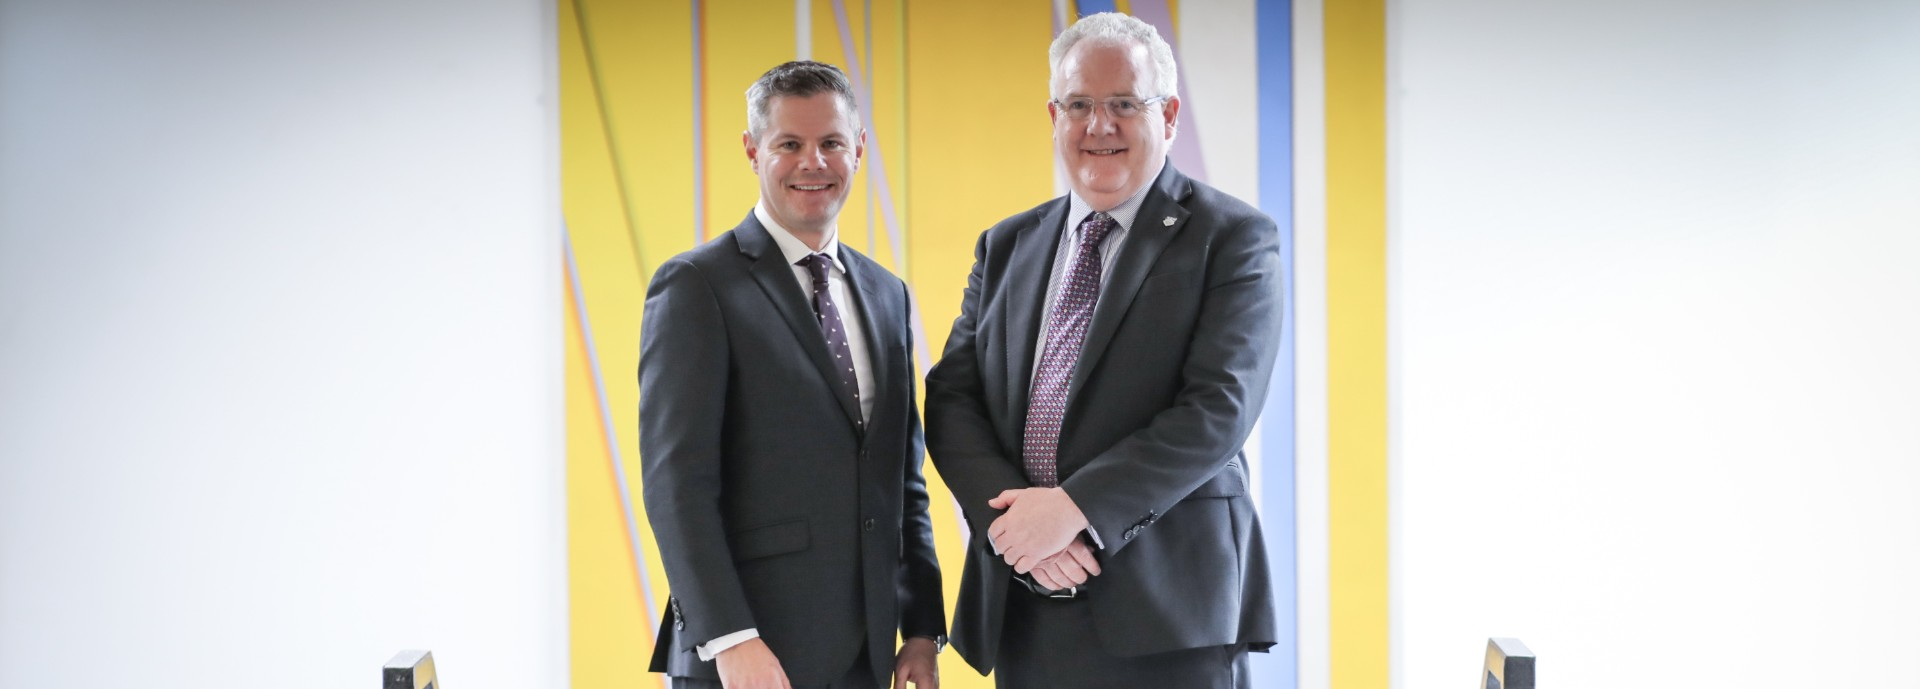 Derek Mackay MSP, Cabinet Secretary for Finance, Economy and Fair Work, with Professor Gerry McCormac, Principal of the University of Stirling